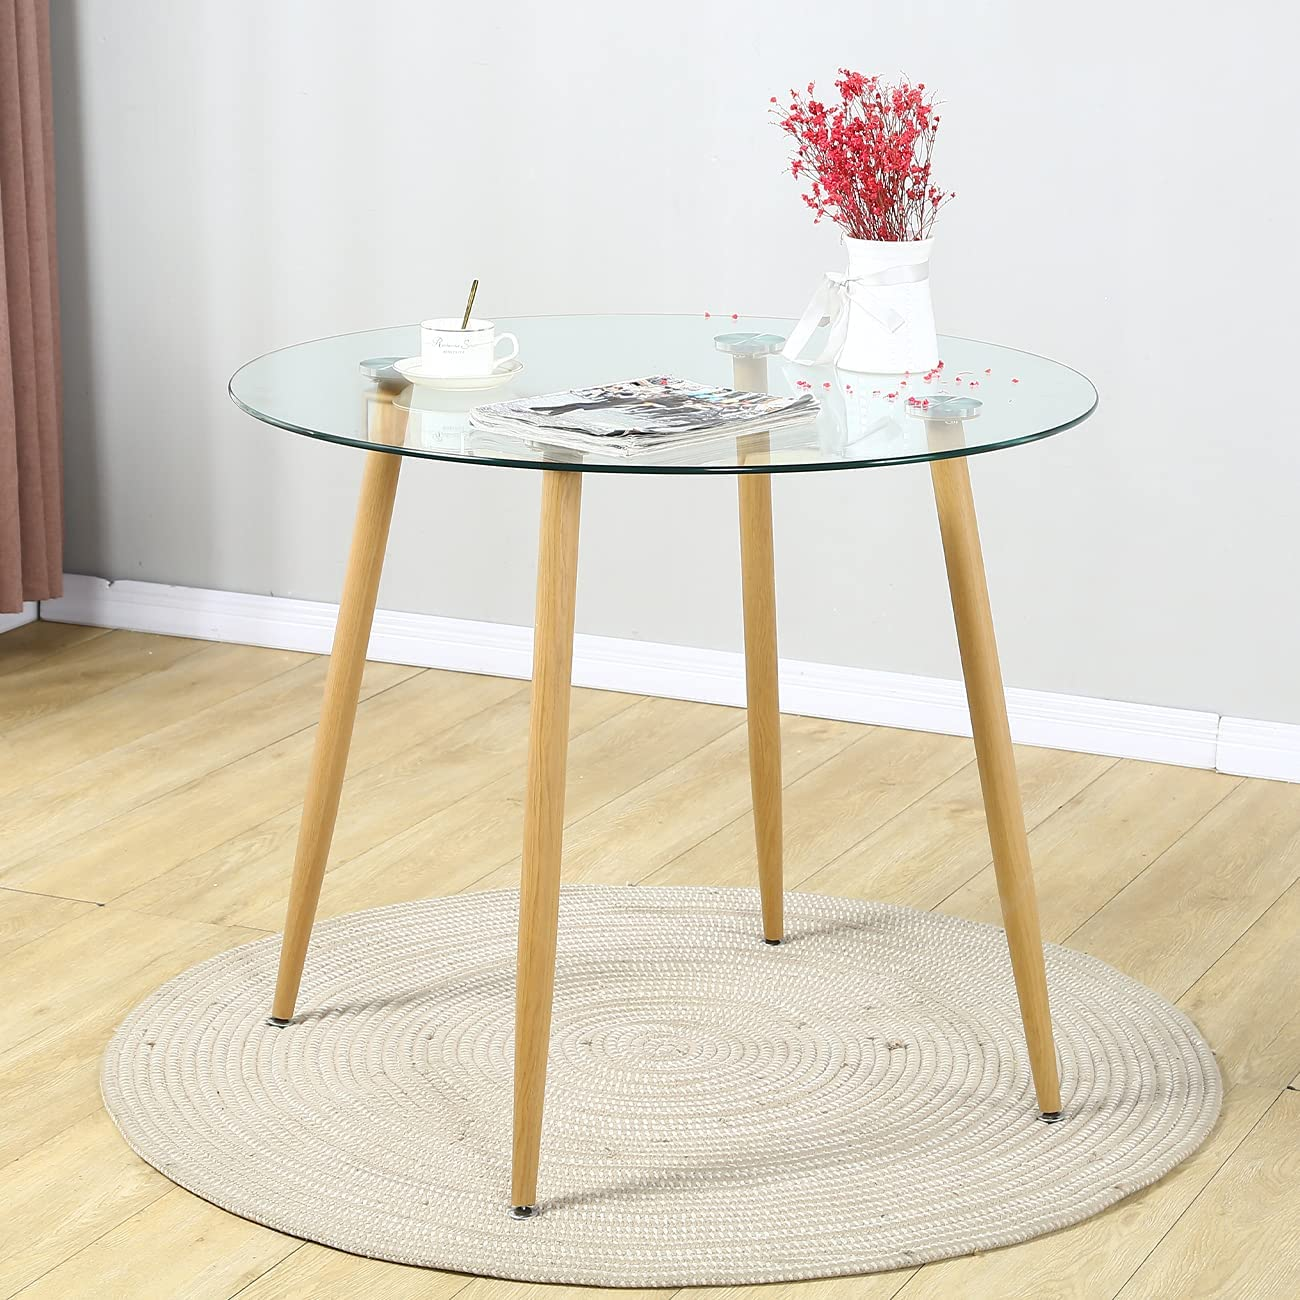 Round Dining 2021 free model Table - Small Space Glass Modern